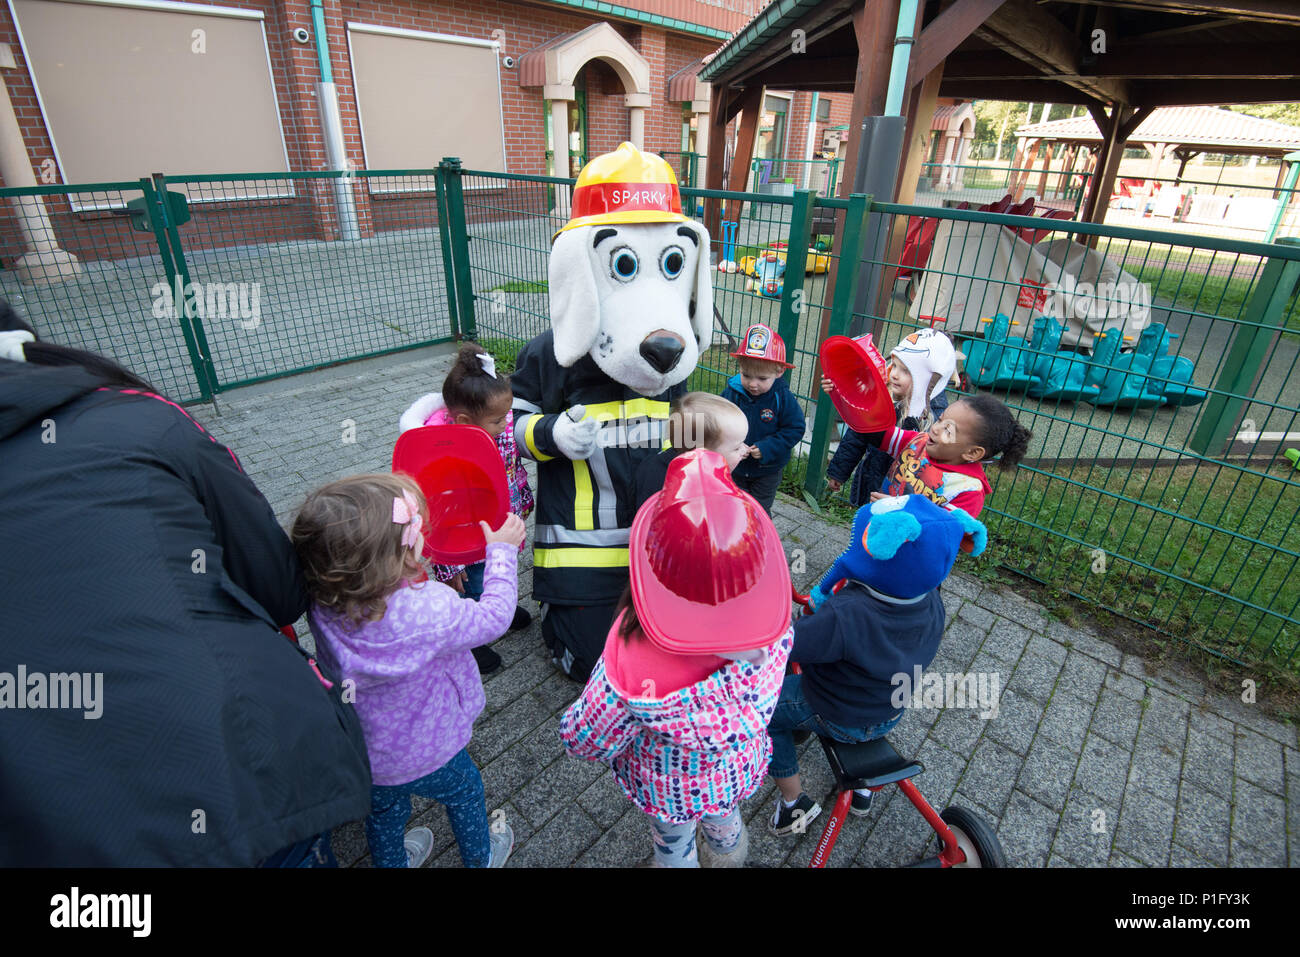 Sparky the fire dog socializes with children with U.S. Army Benelux SHAPE Child Development Center after a fire drill during fire prevention week, at SHAPE, in Mons, Belgium, Oct. 13, 2016. (U.S. Army photo by Visual Information Specialist Pierre-Etienne Courtejoie) - Stock Image